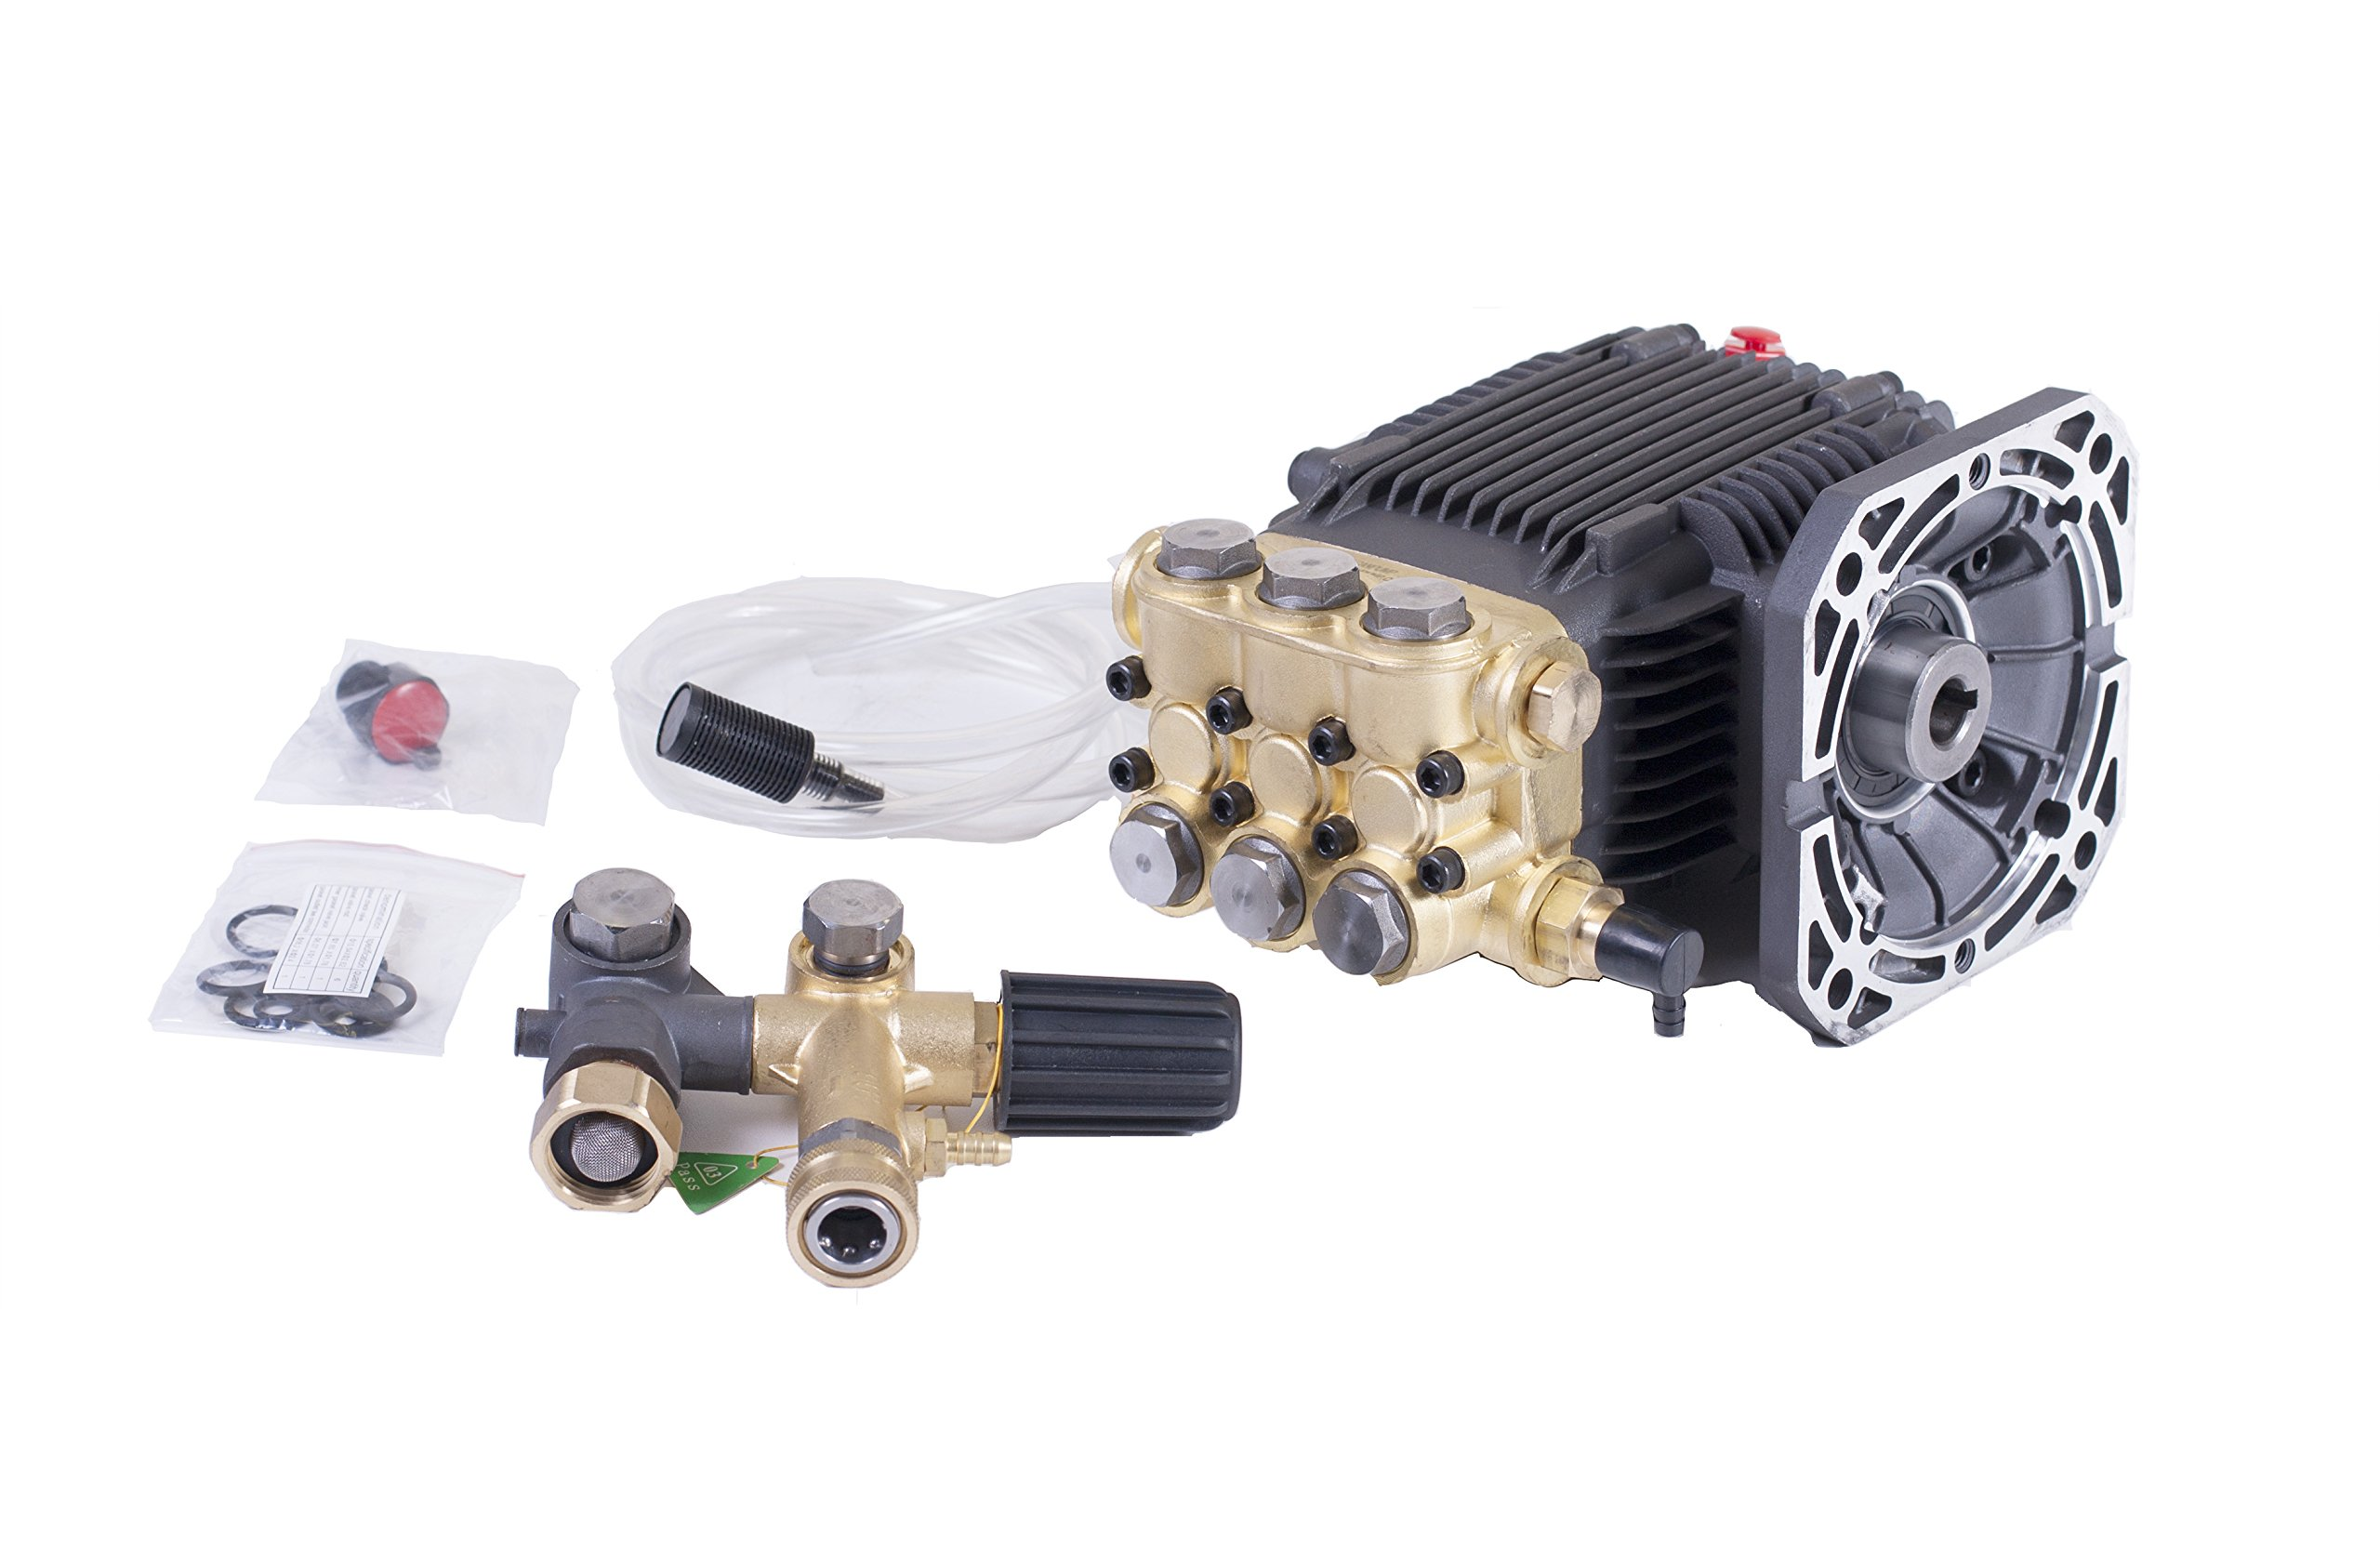 CANPUMP Direct Drive 5/8'' Hollow Shaft Pressure Power Washer Pump 2.2 GPM 1500 PSI by CANPUMP